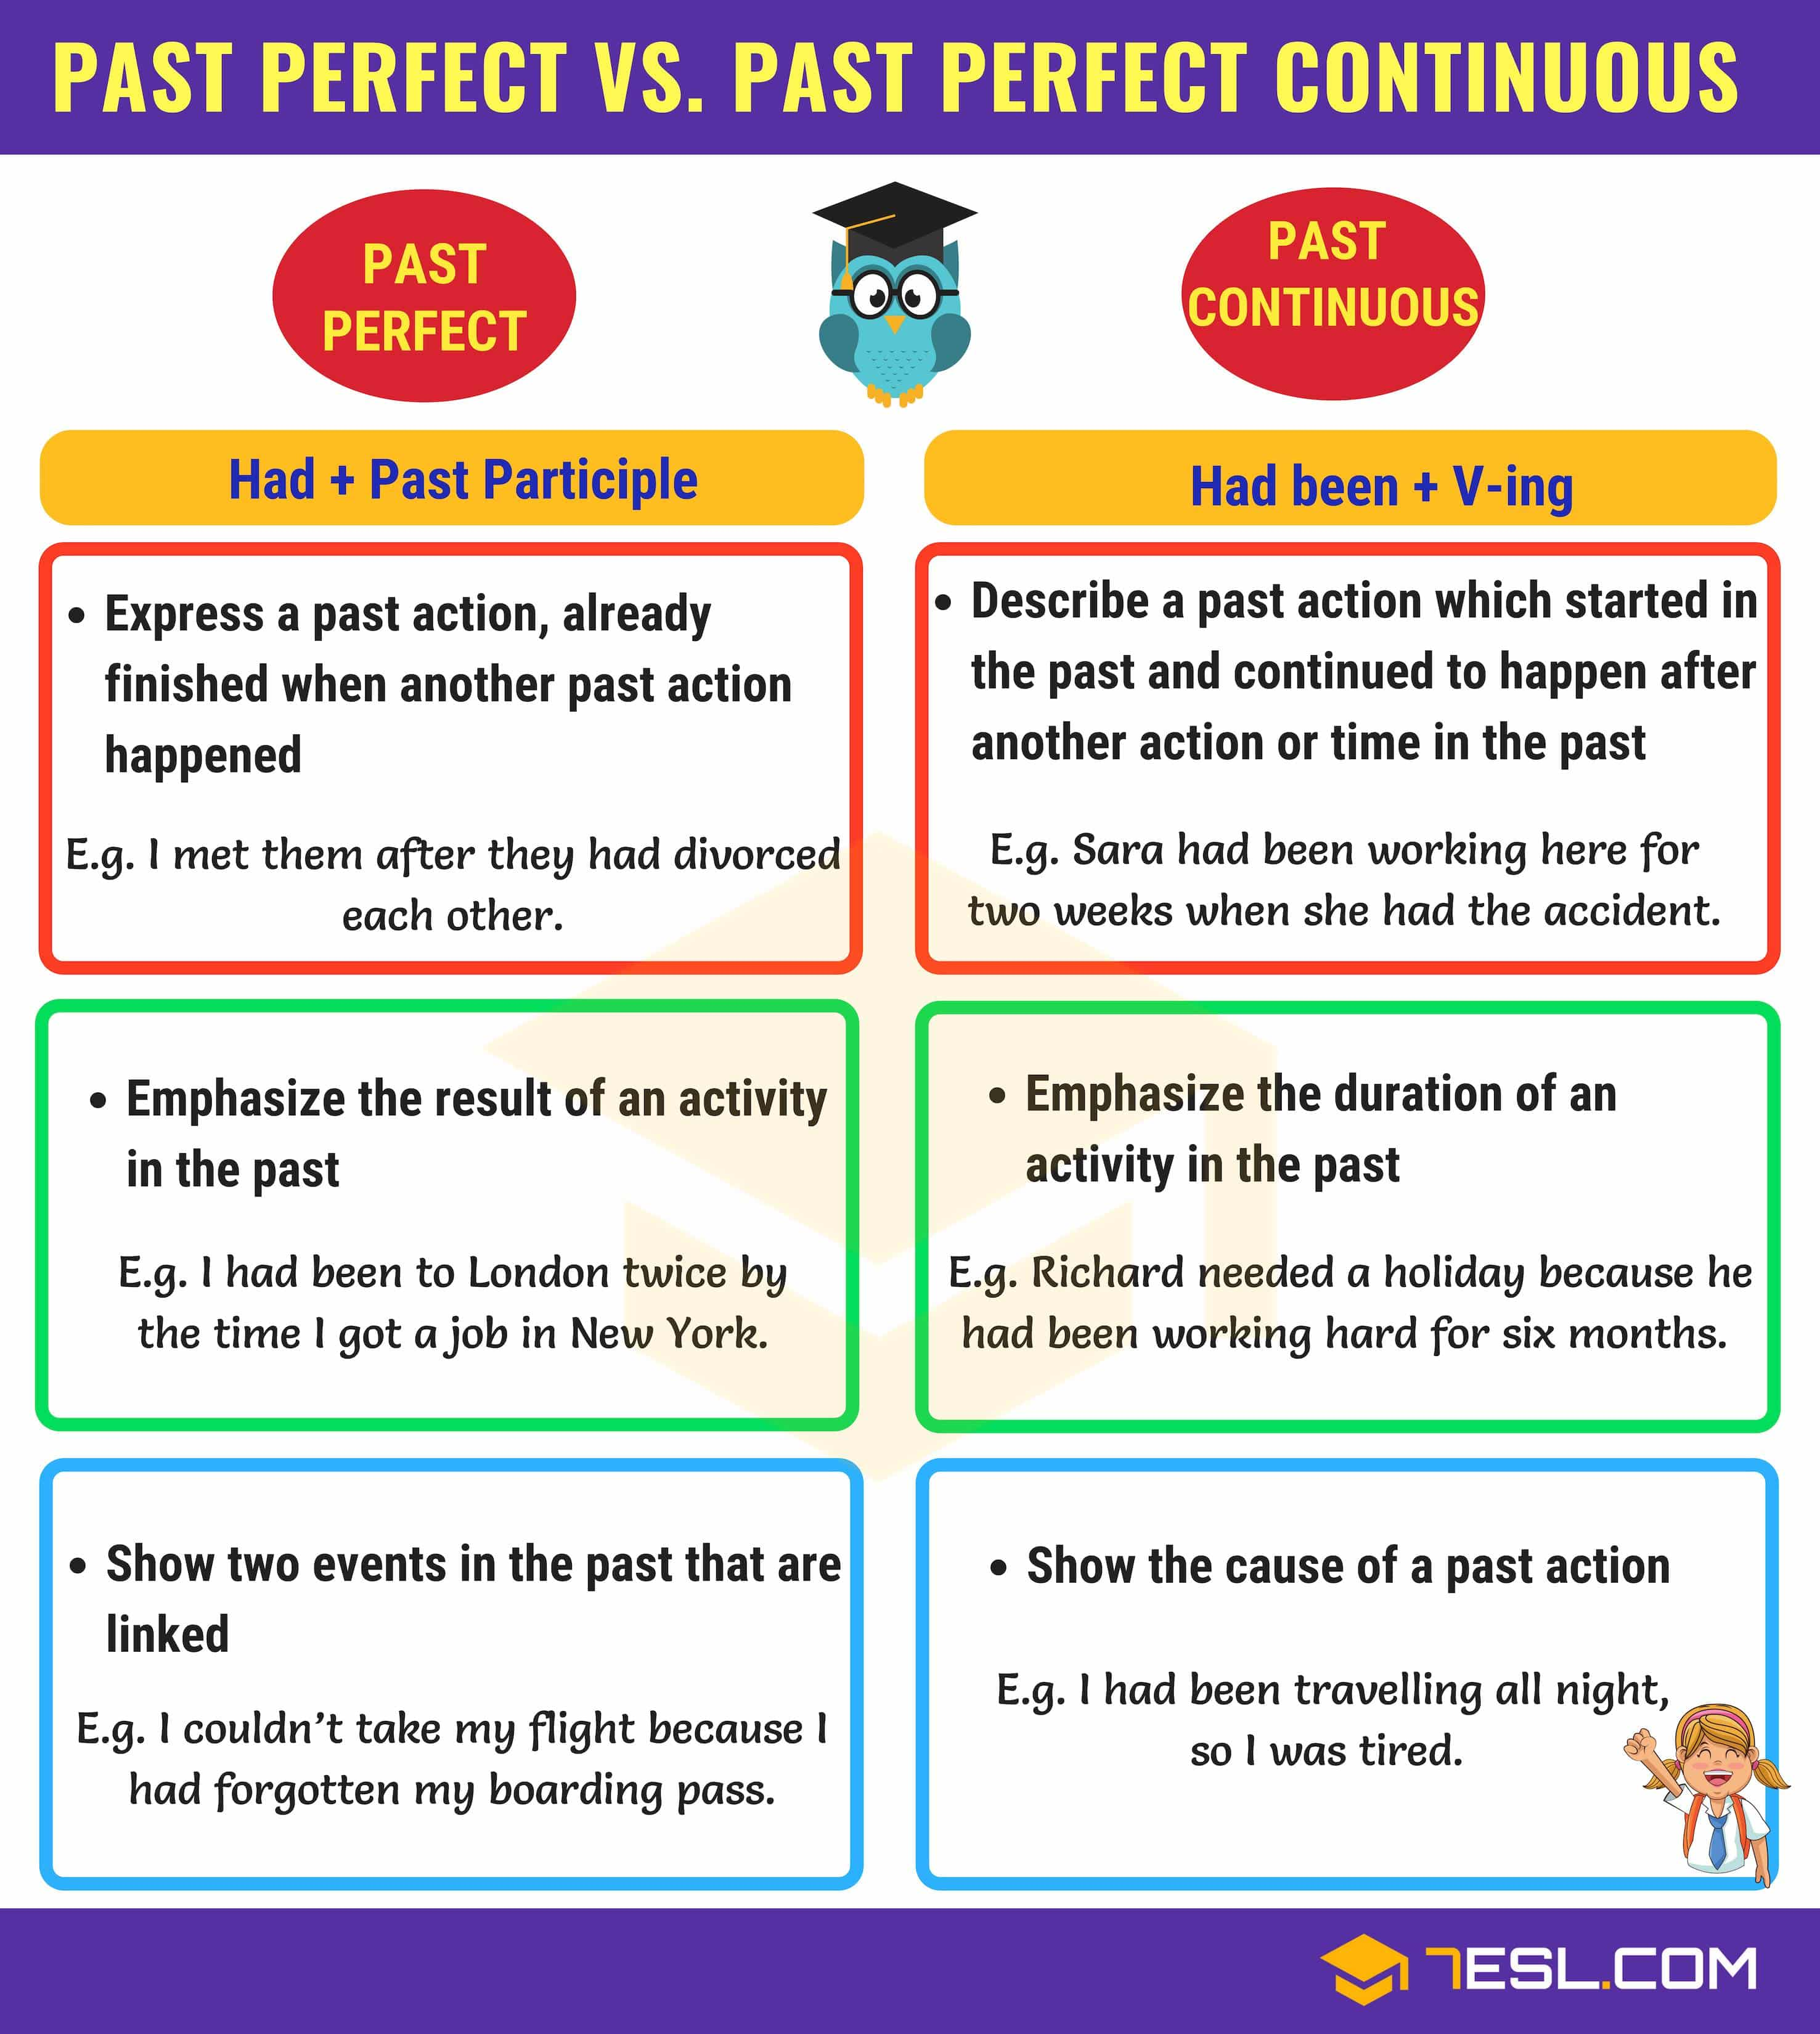 Past Perfect and Past Perfect Continuous: Useful Differences